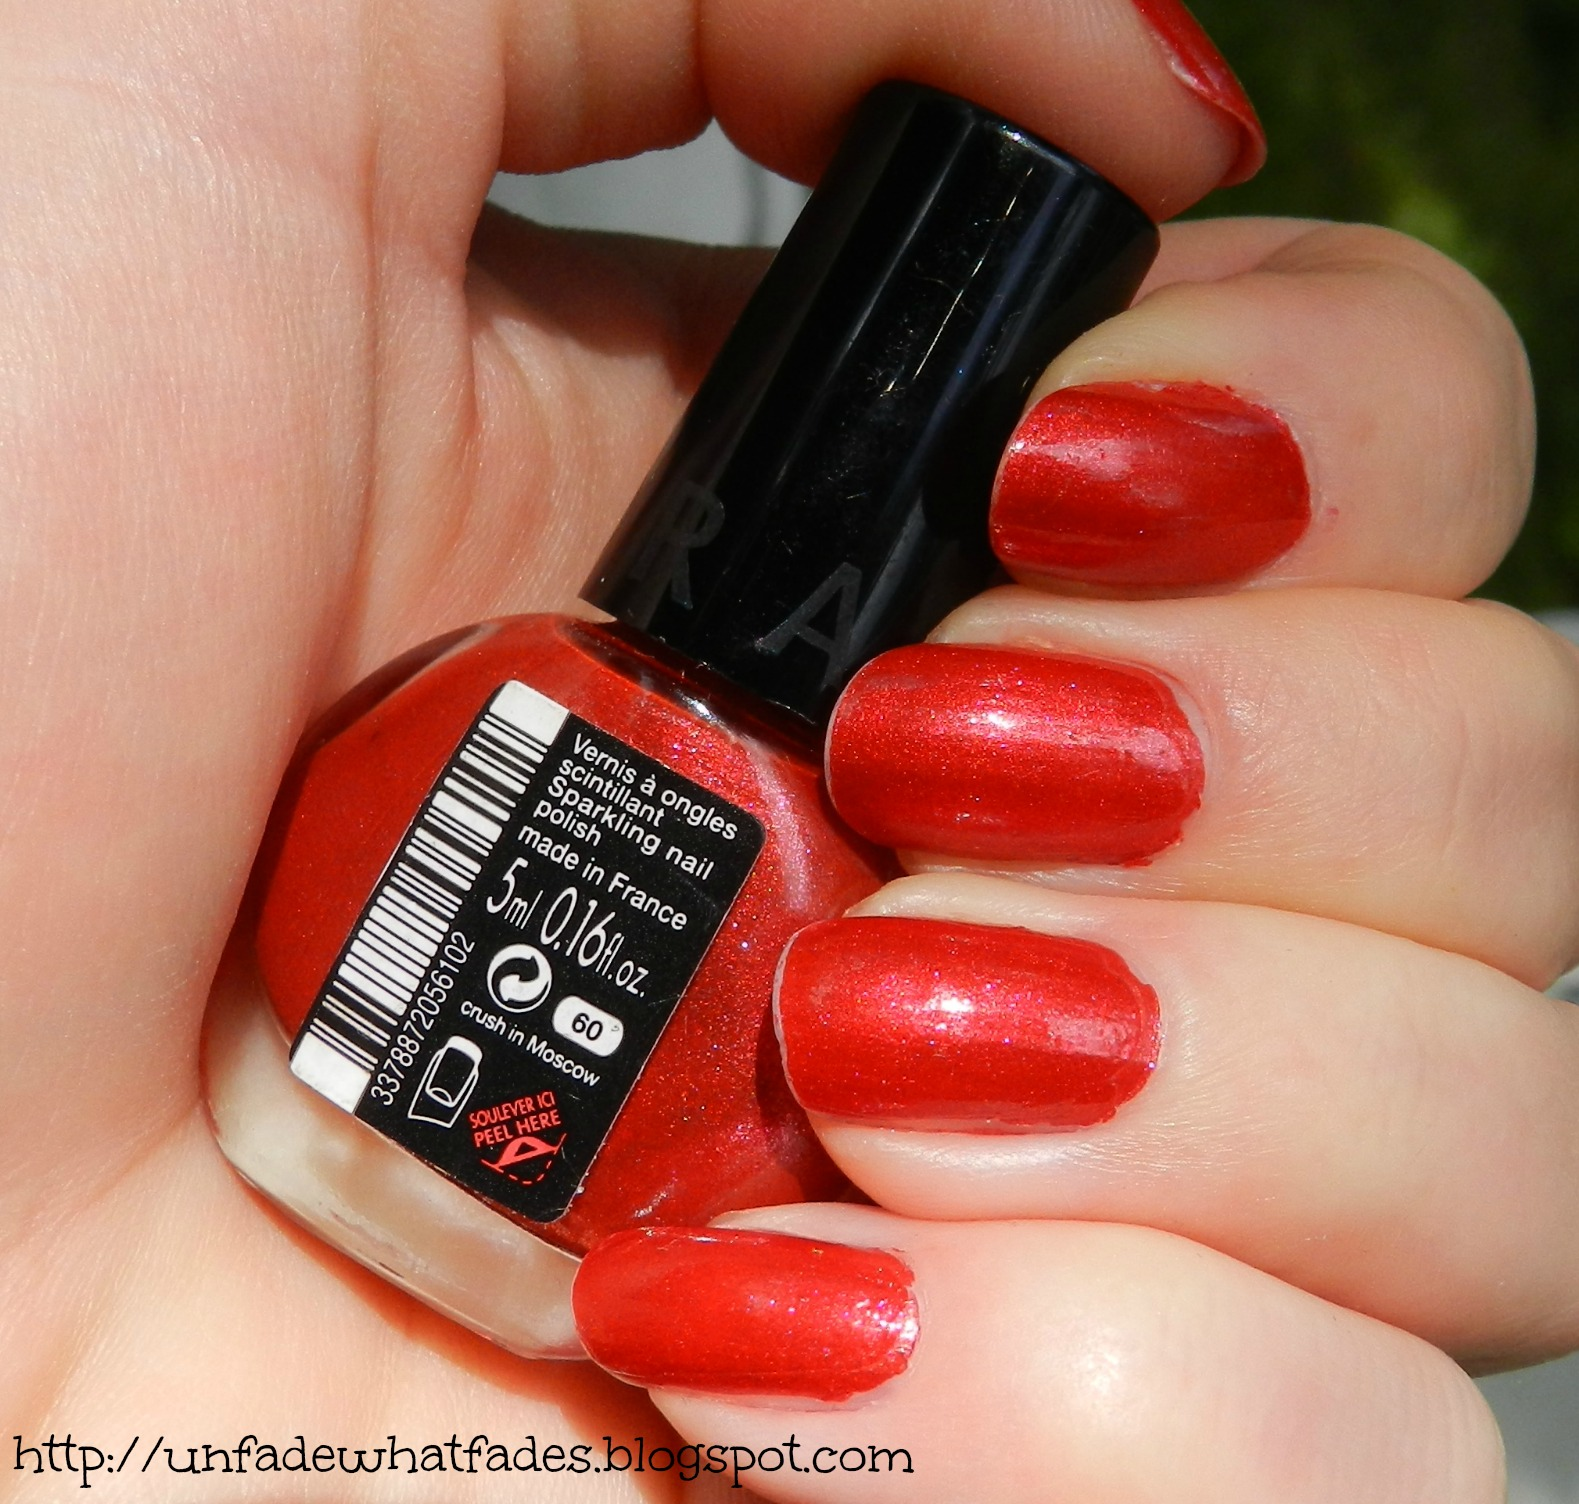 Nail Polish Sephora: Unfade What Fades: Sephora Nail Polish In Crush In Moscow